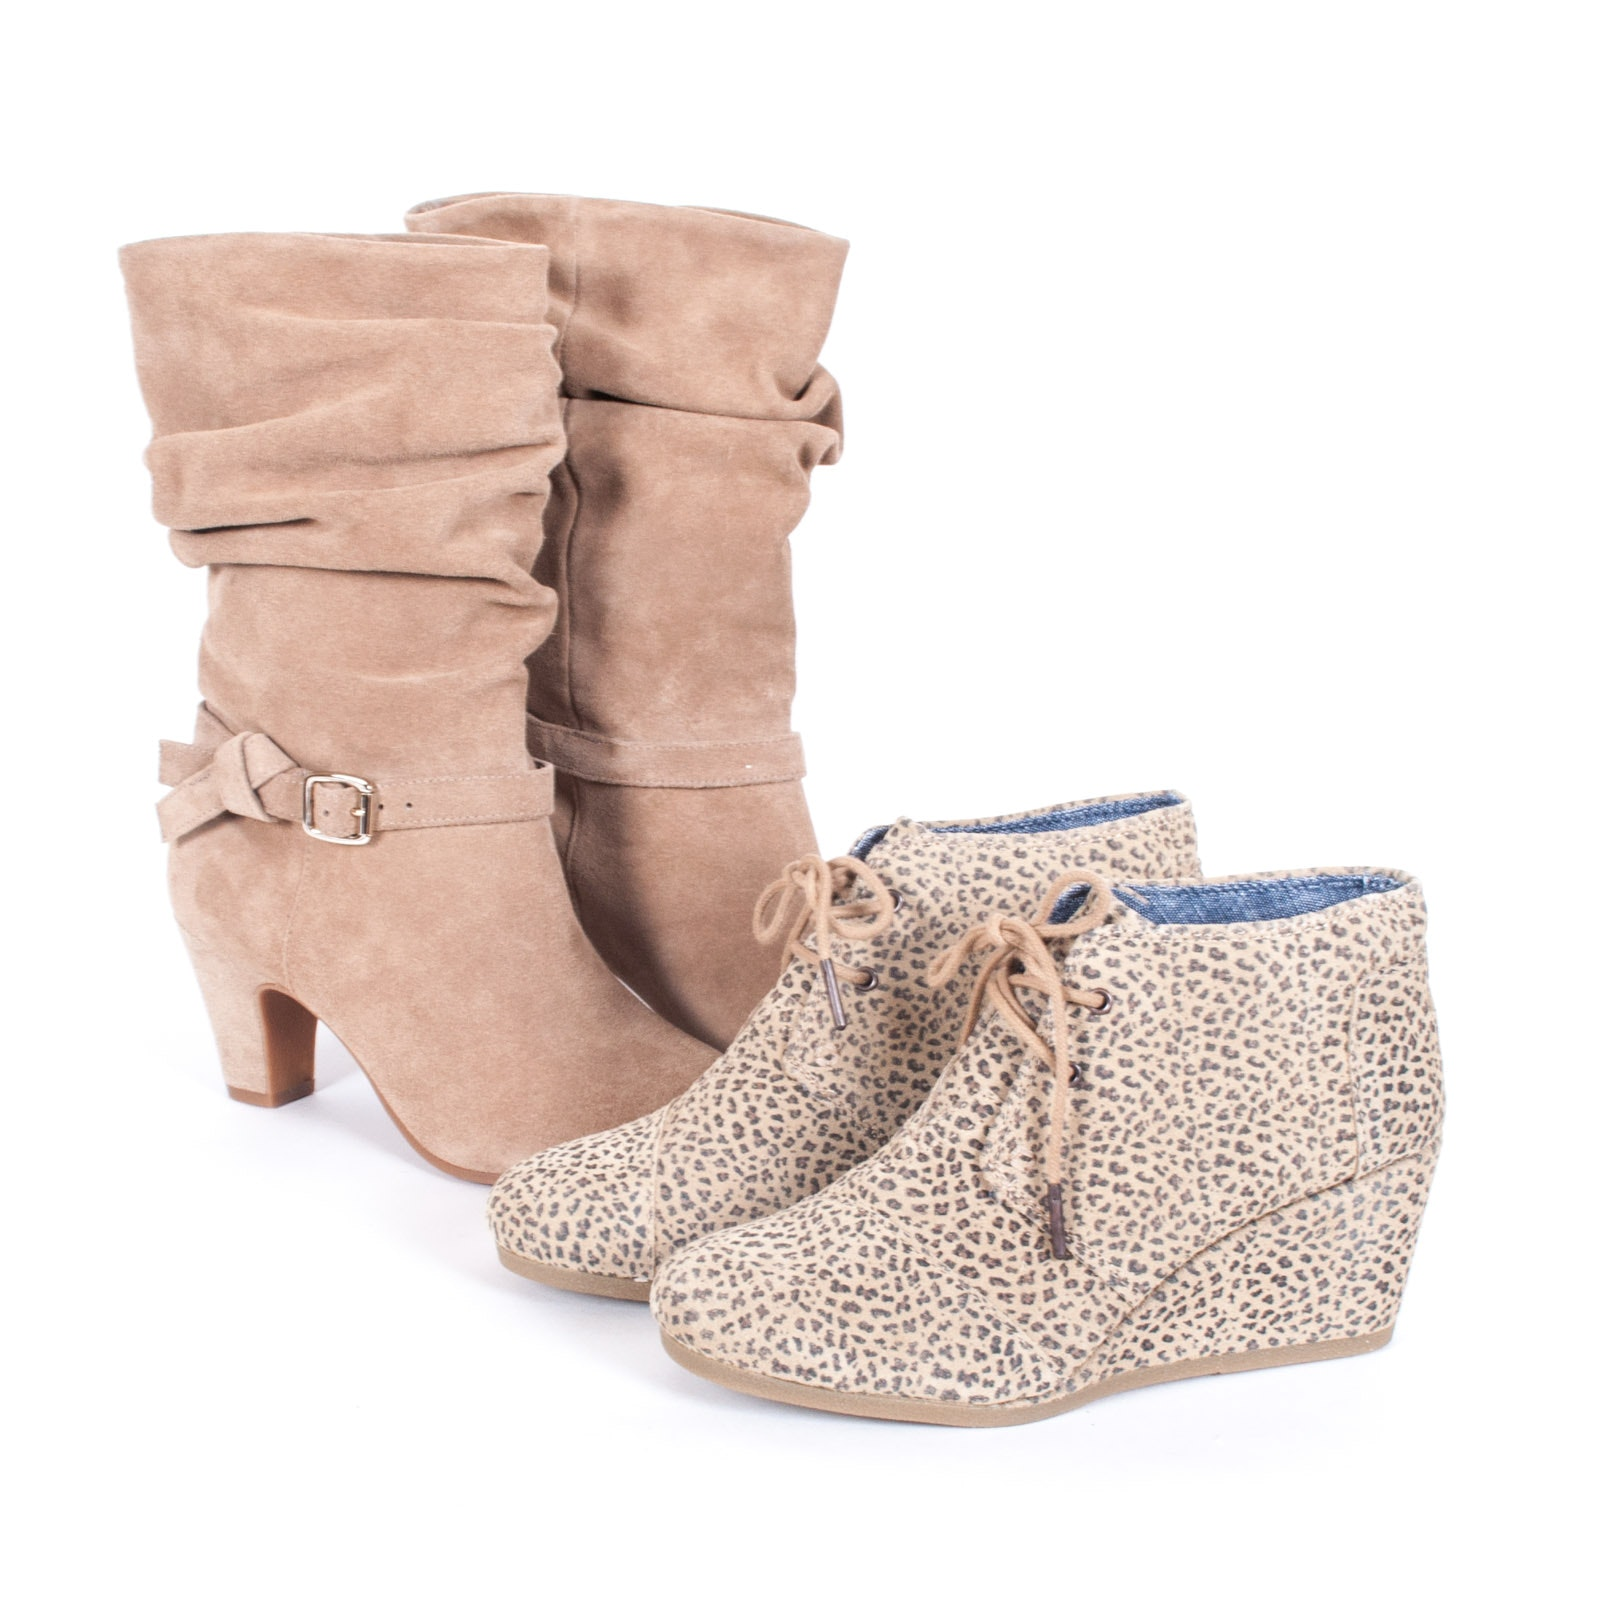 Toms Wedge Booties and Alex Marie Tan Suede Boots